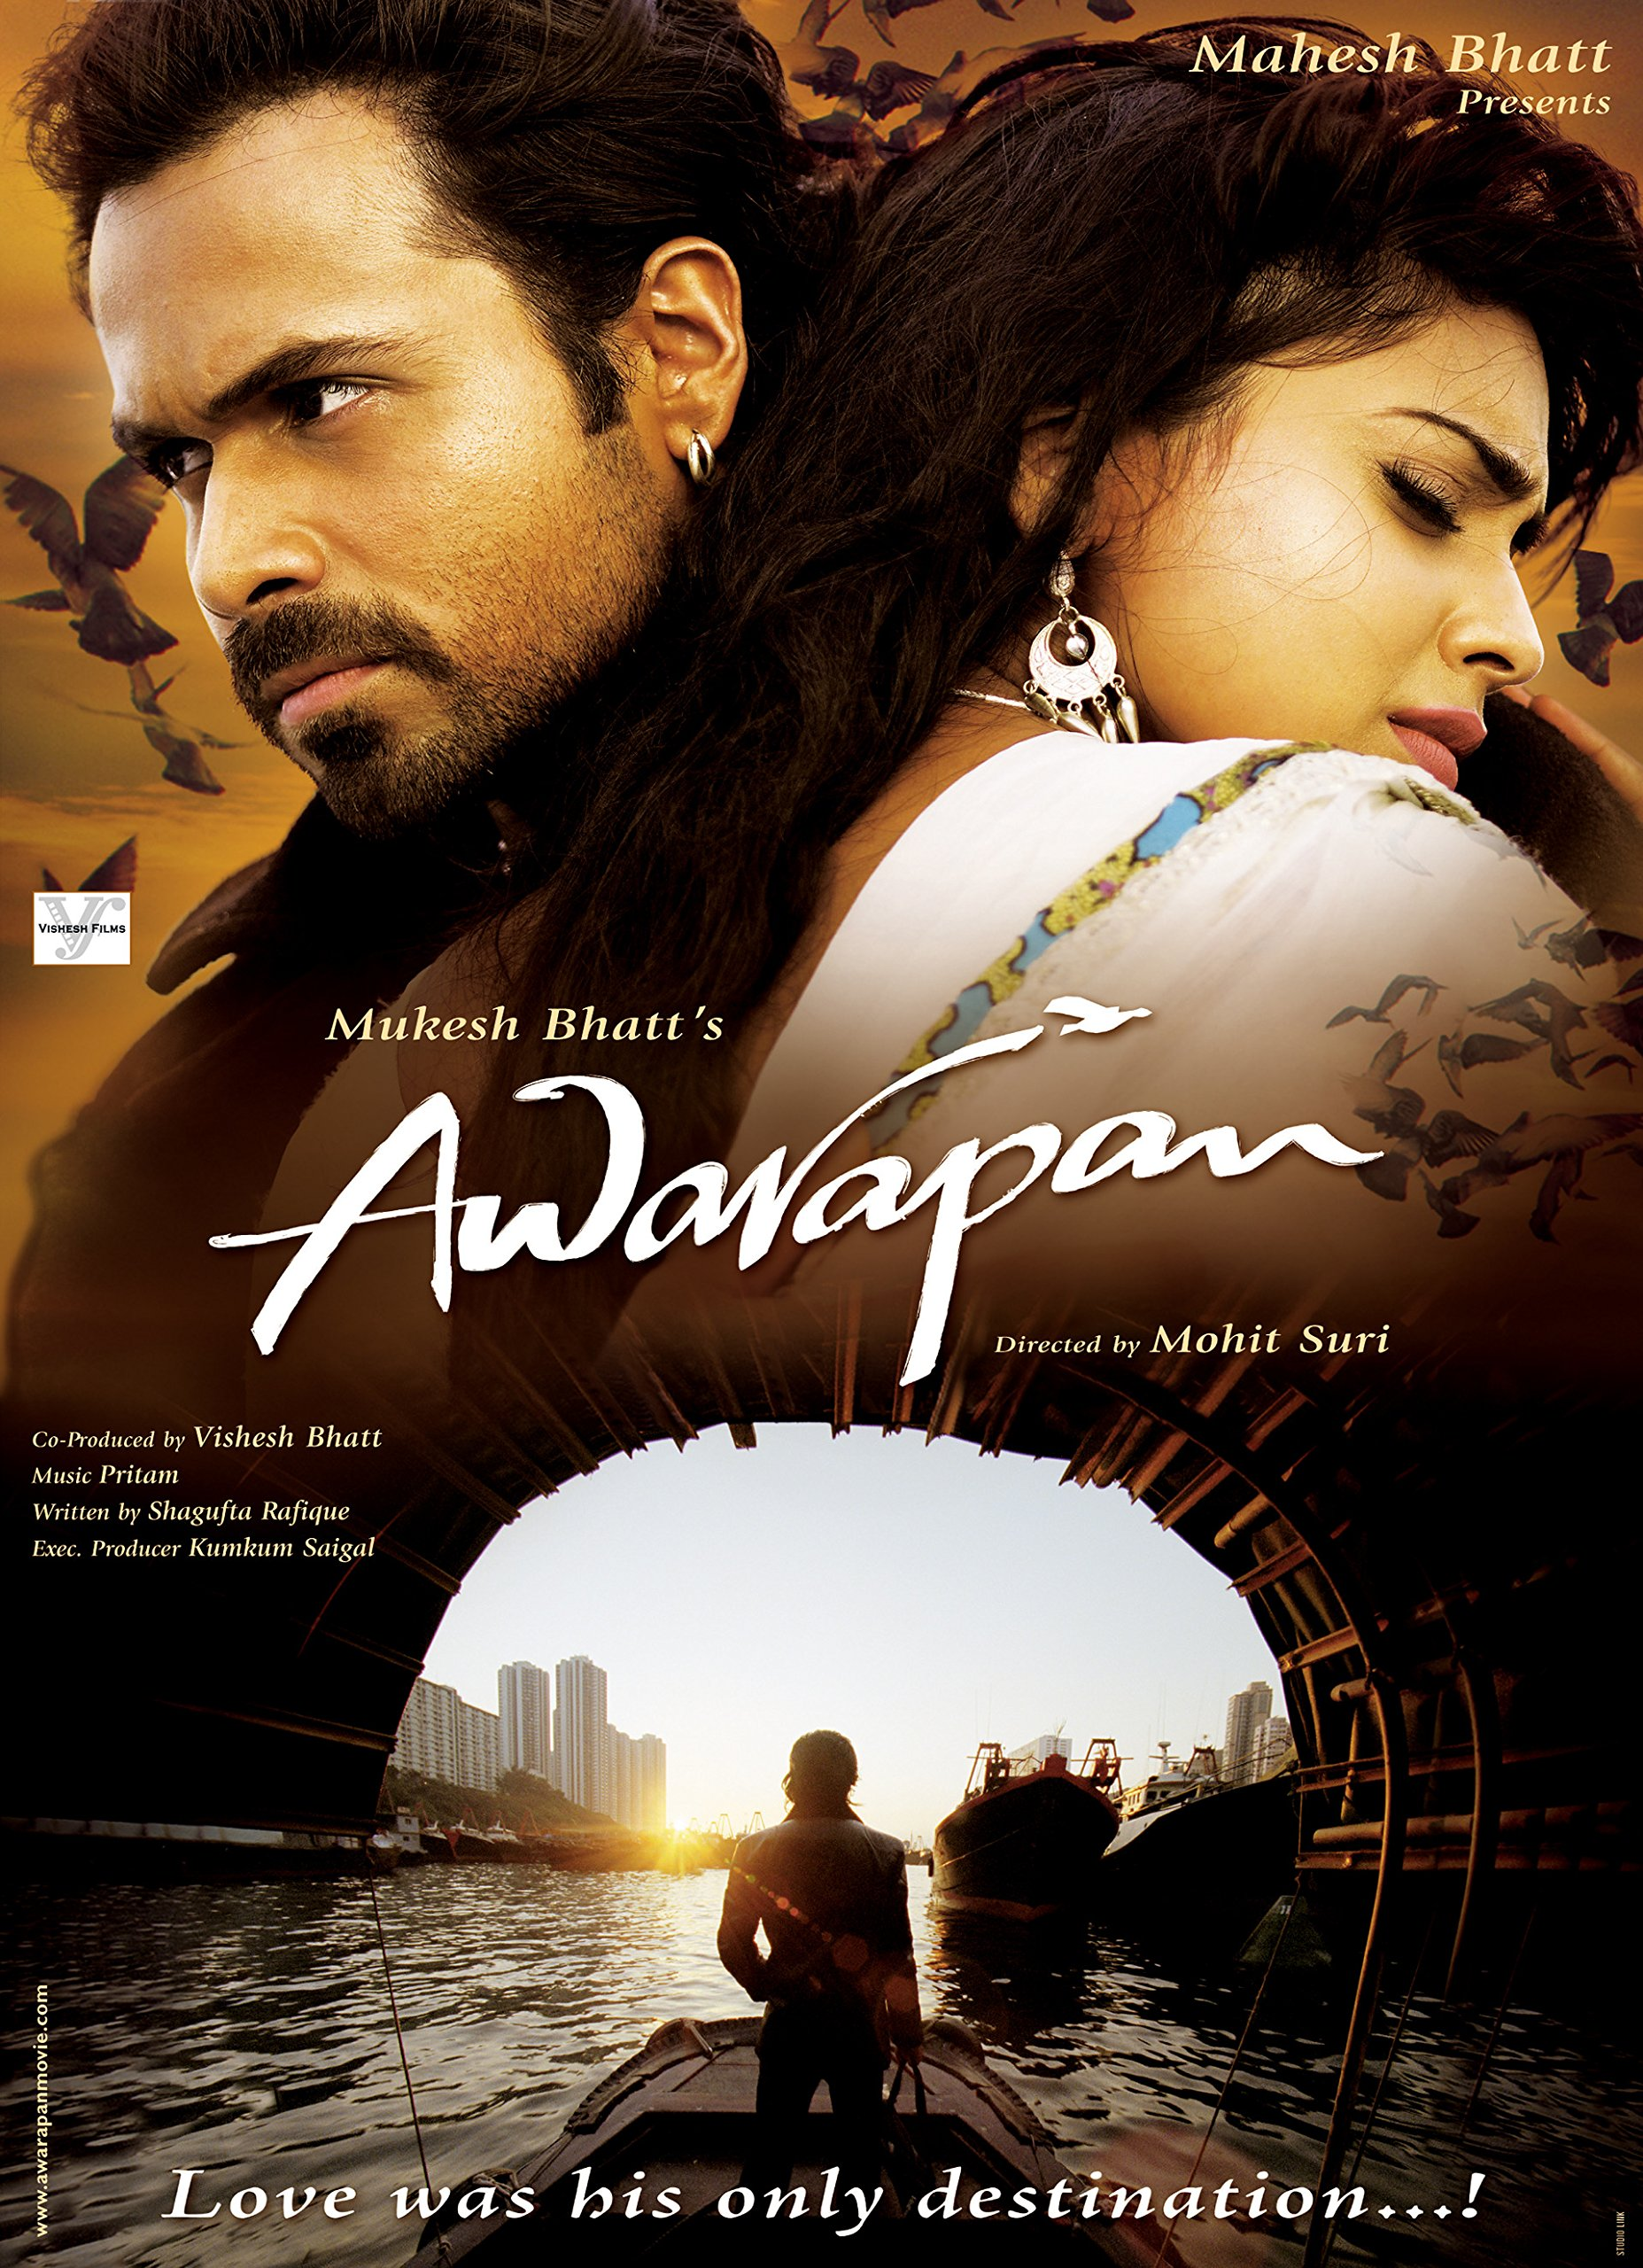 Awarapan Photos Poster Images Photos Wallpapers Hd Images Pictures Bollywood Hungama